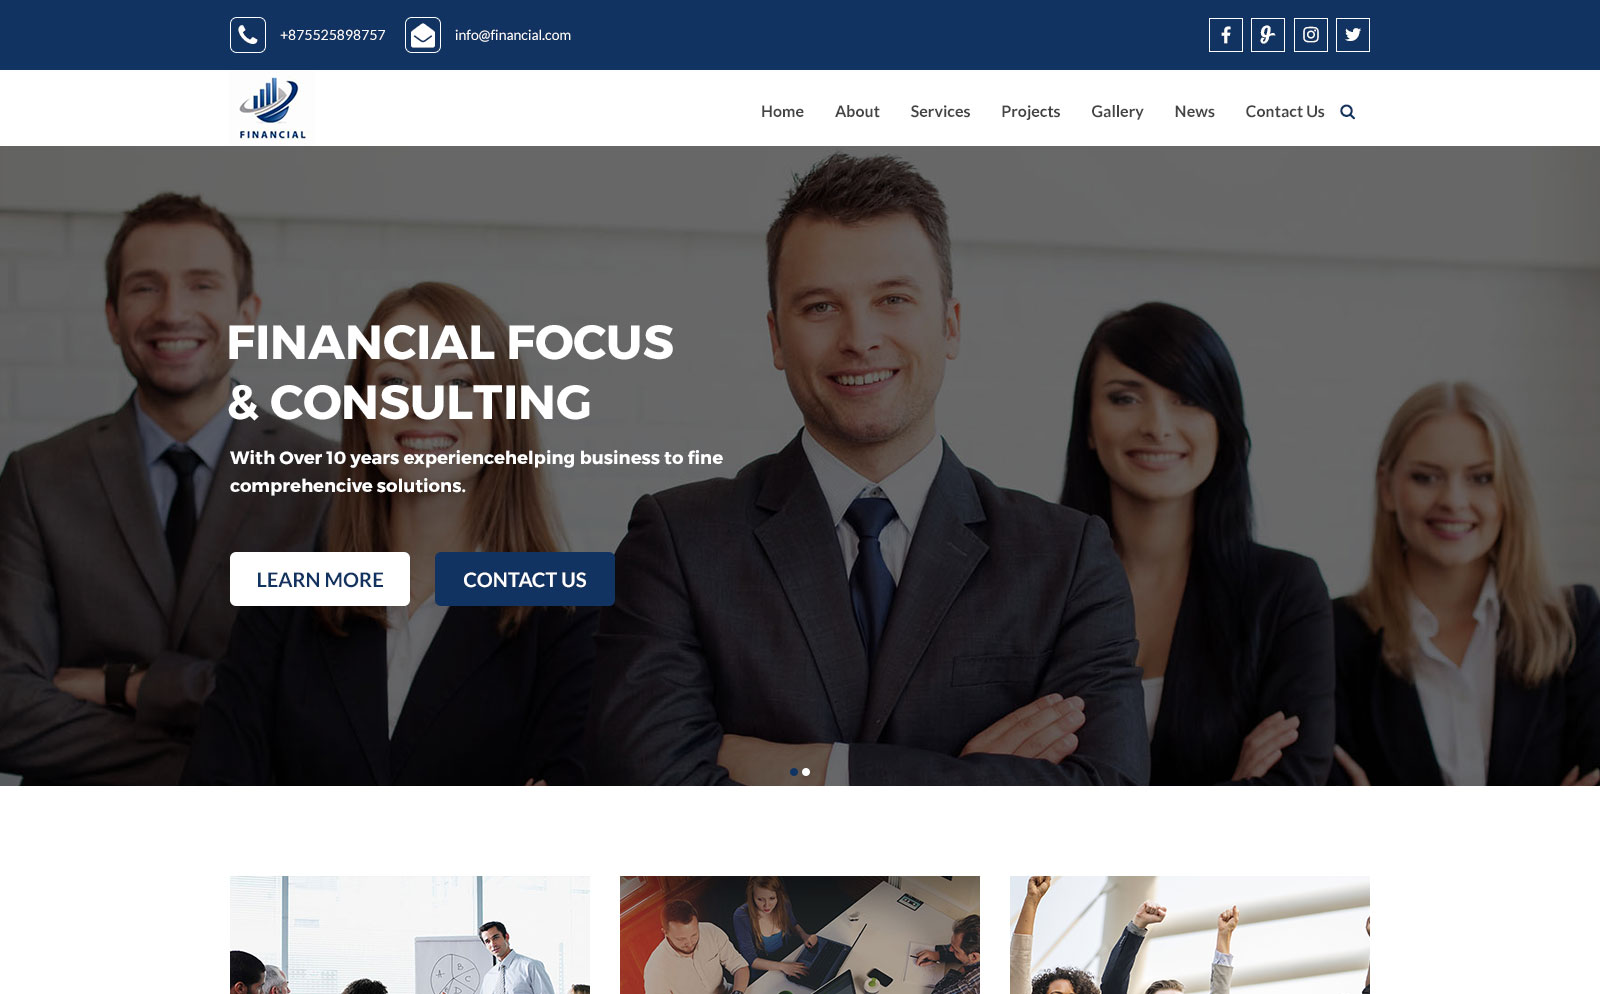 Financial - Business and Finance PSD Template